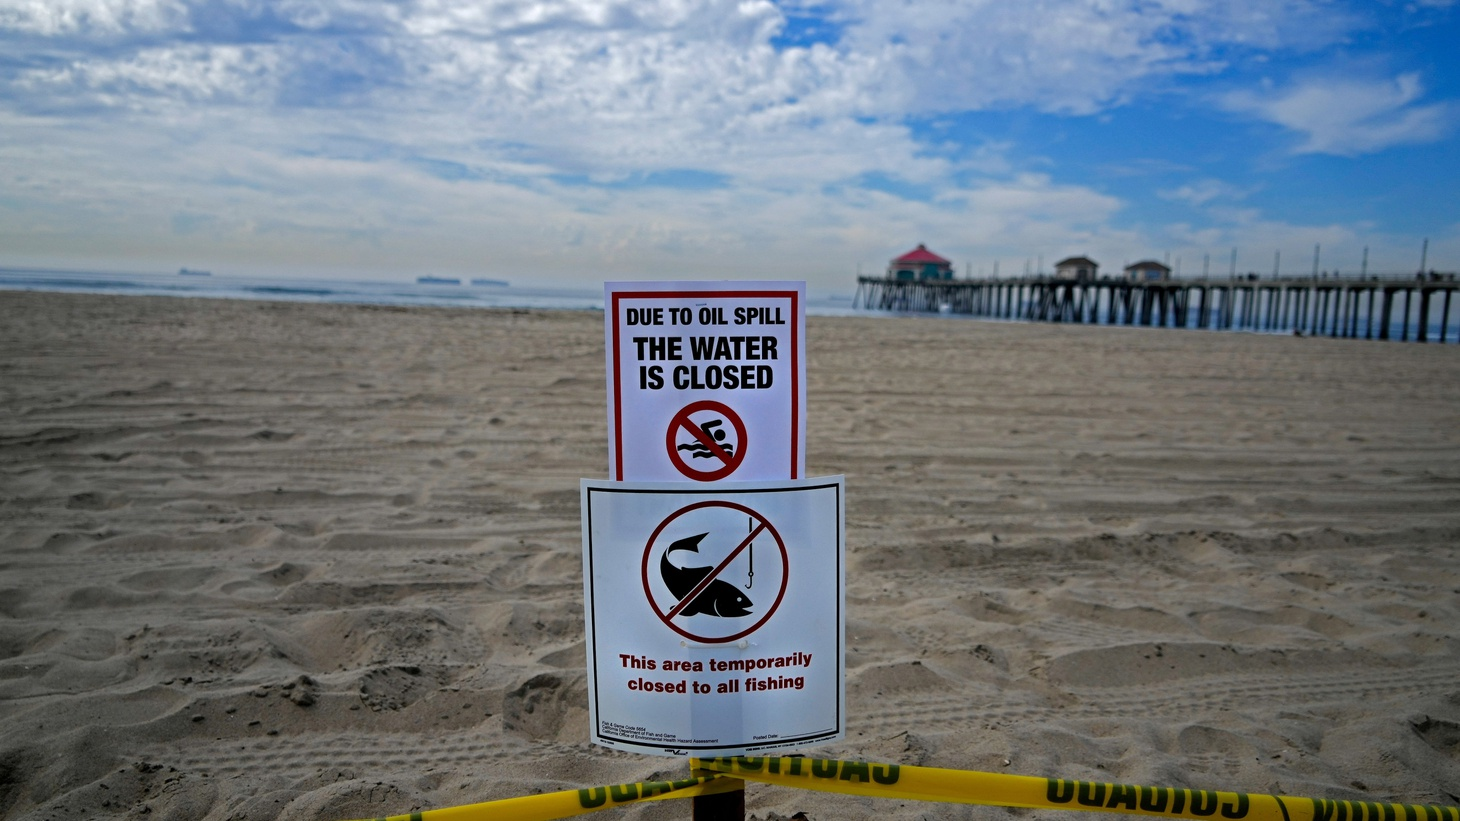 Huntington Beach reopened but the water remained closed on Oct. 4, 2021. More than 125,000 gallons of oil spilled from a pipeline about four miles offshore of Southern California's coast.